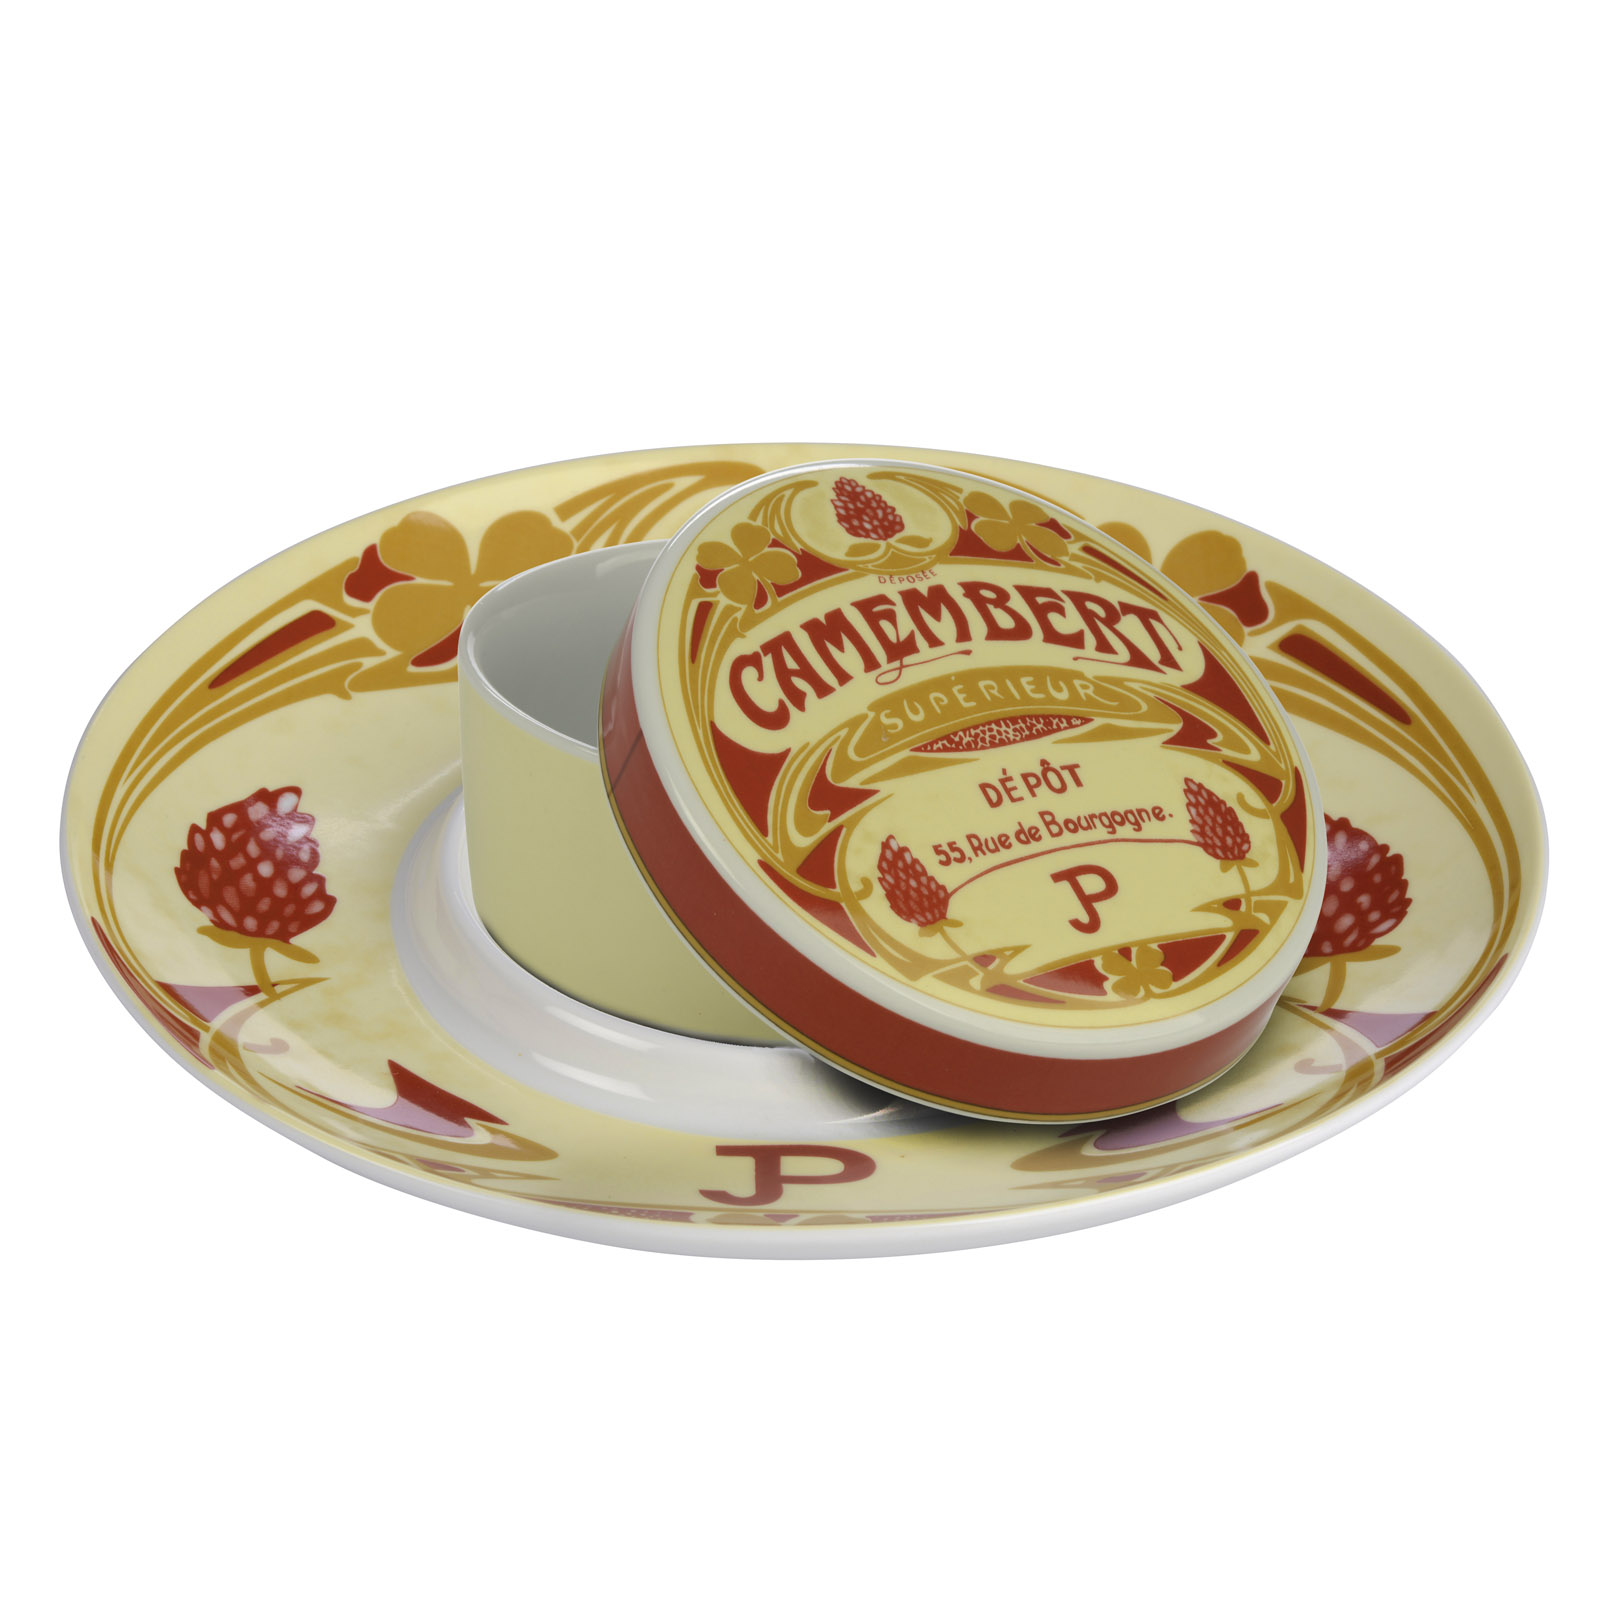 Vintage Camembert Baker and Platter